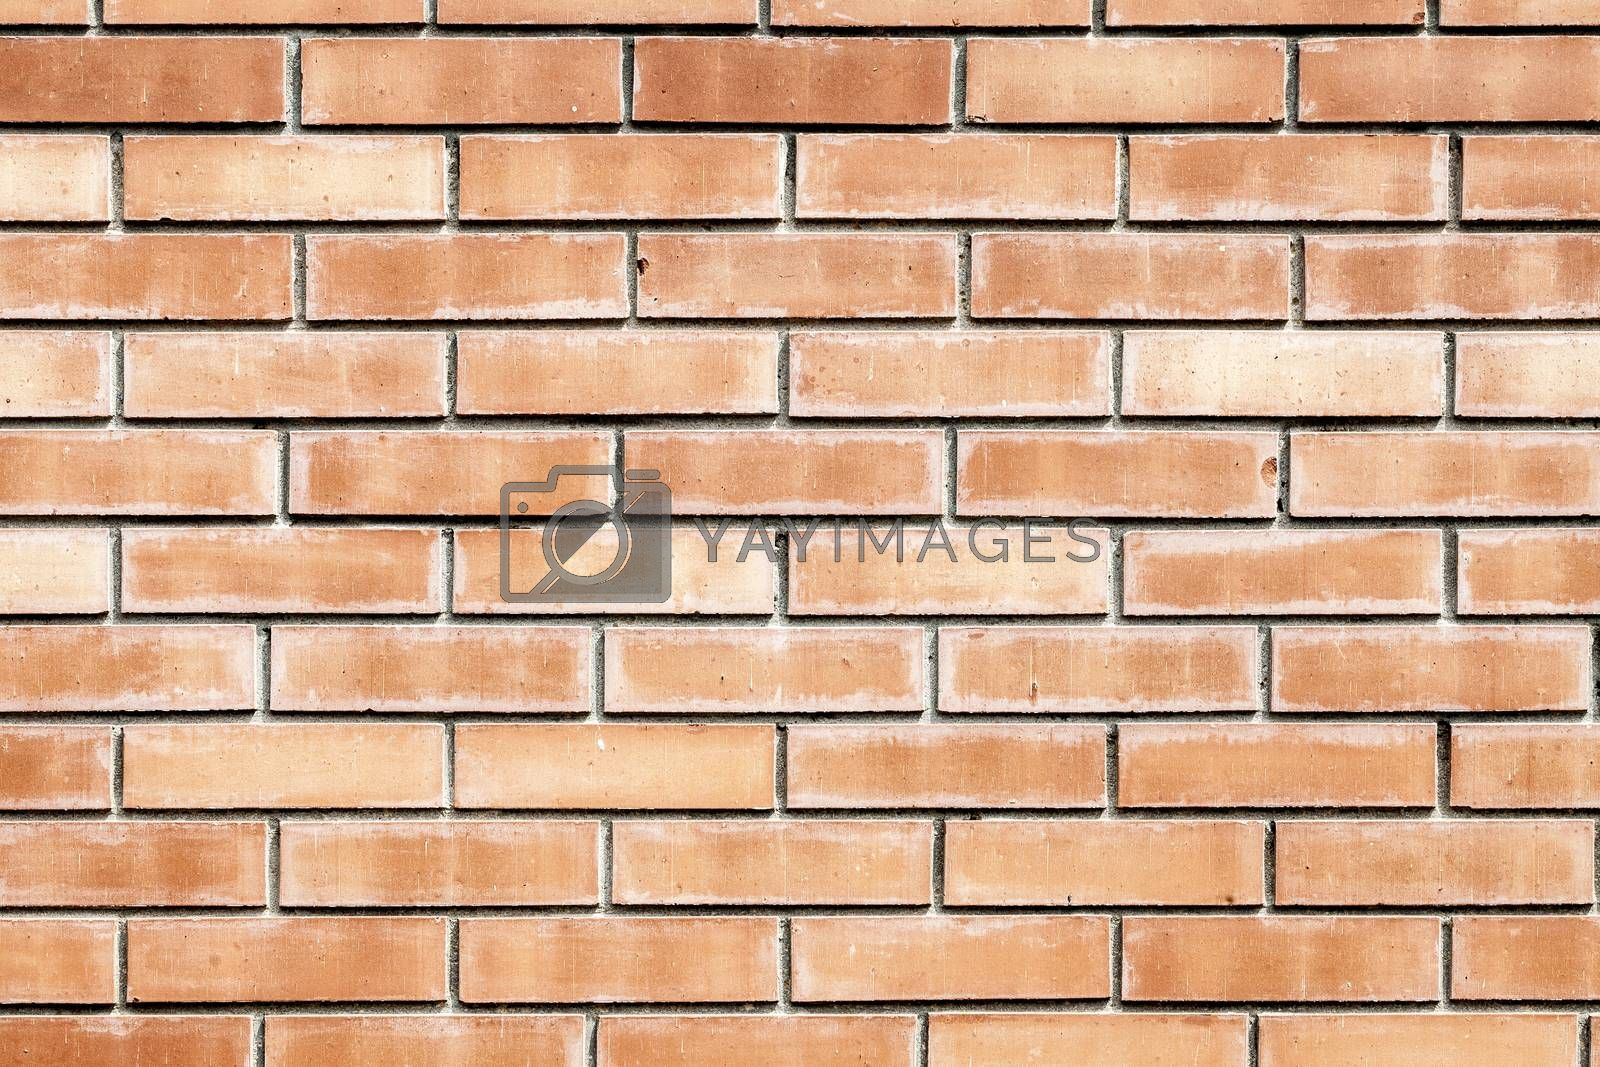 The Weathered Old Red Brick Wall Background